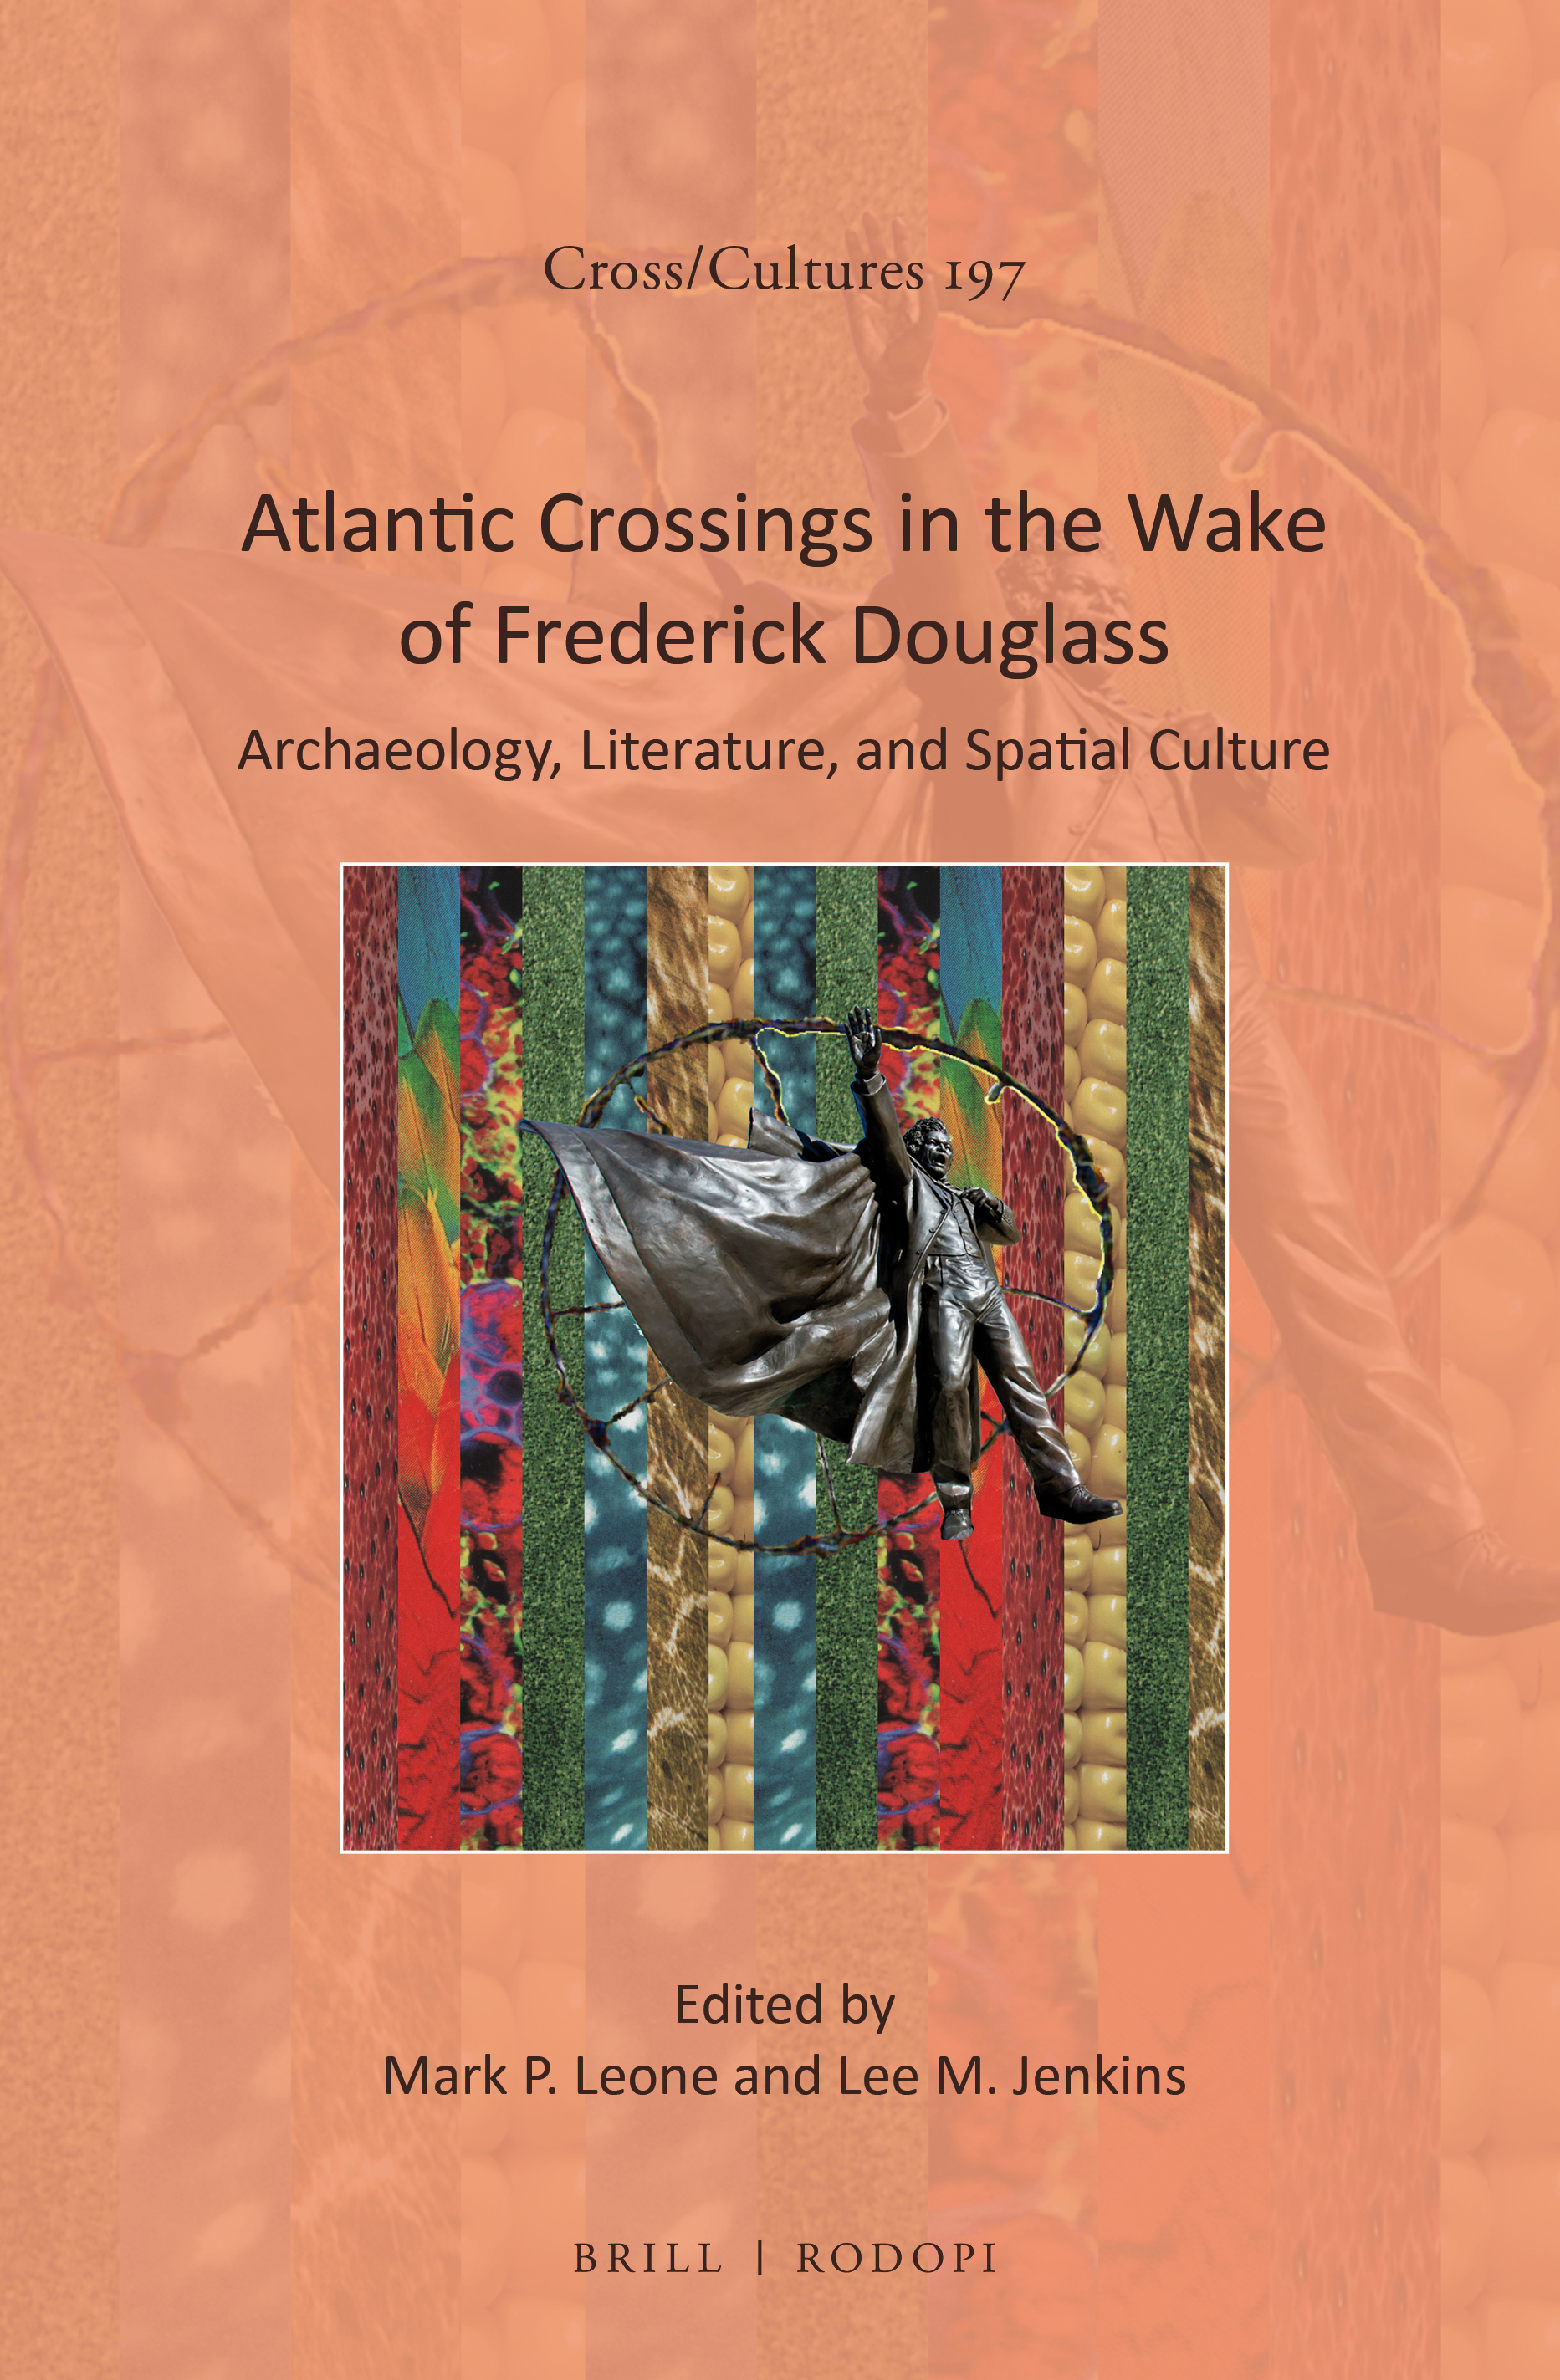 Launch of 'Atlantic Crossings in the Wake of Frederick Douglass'